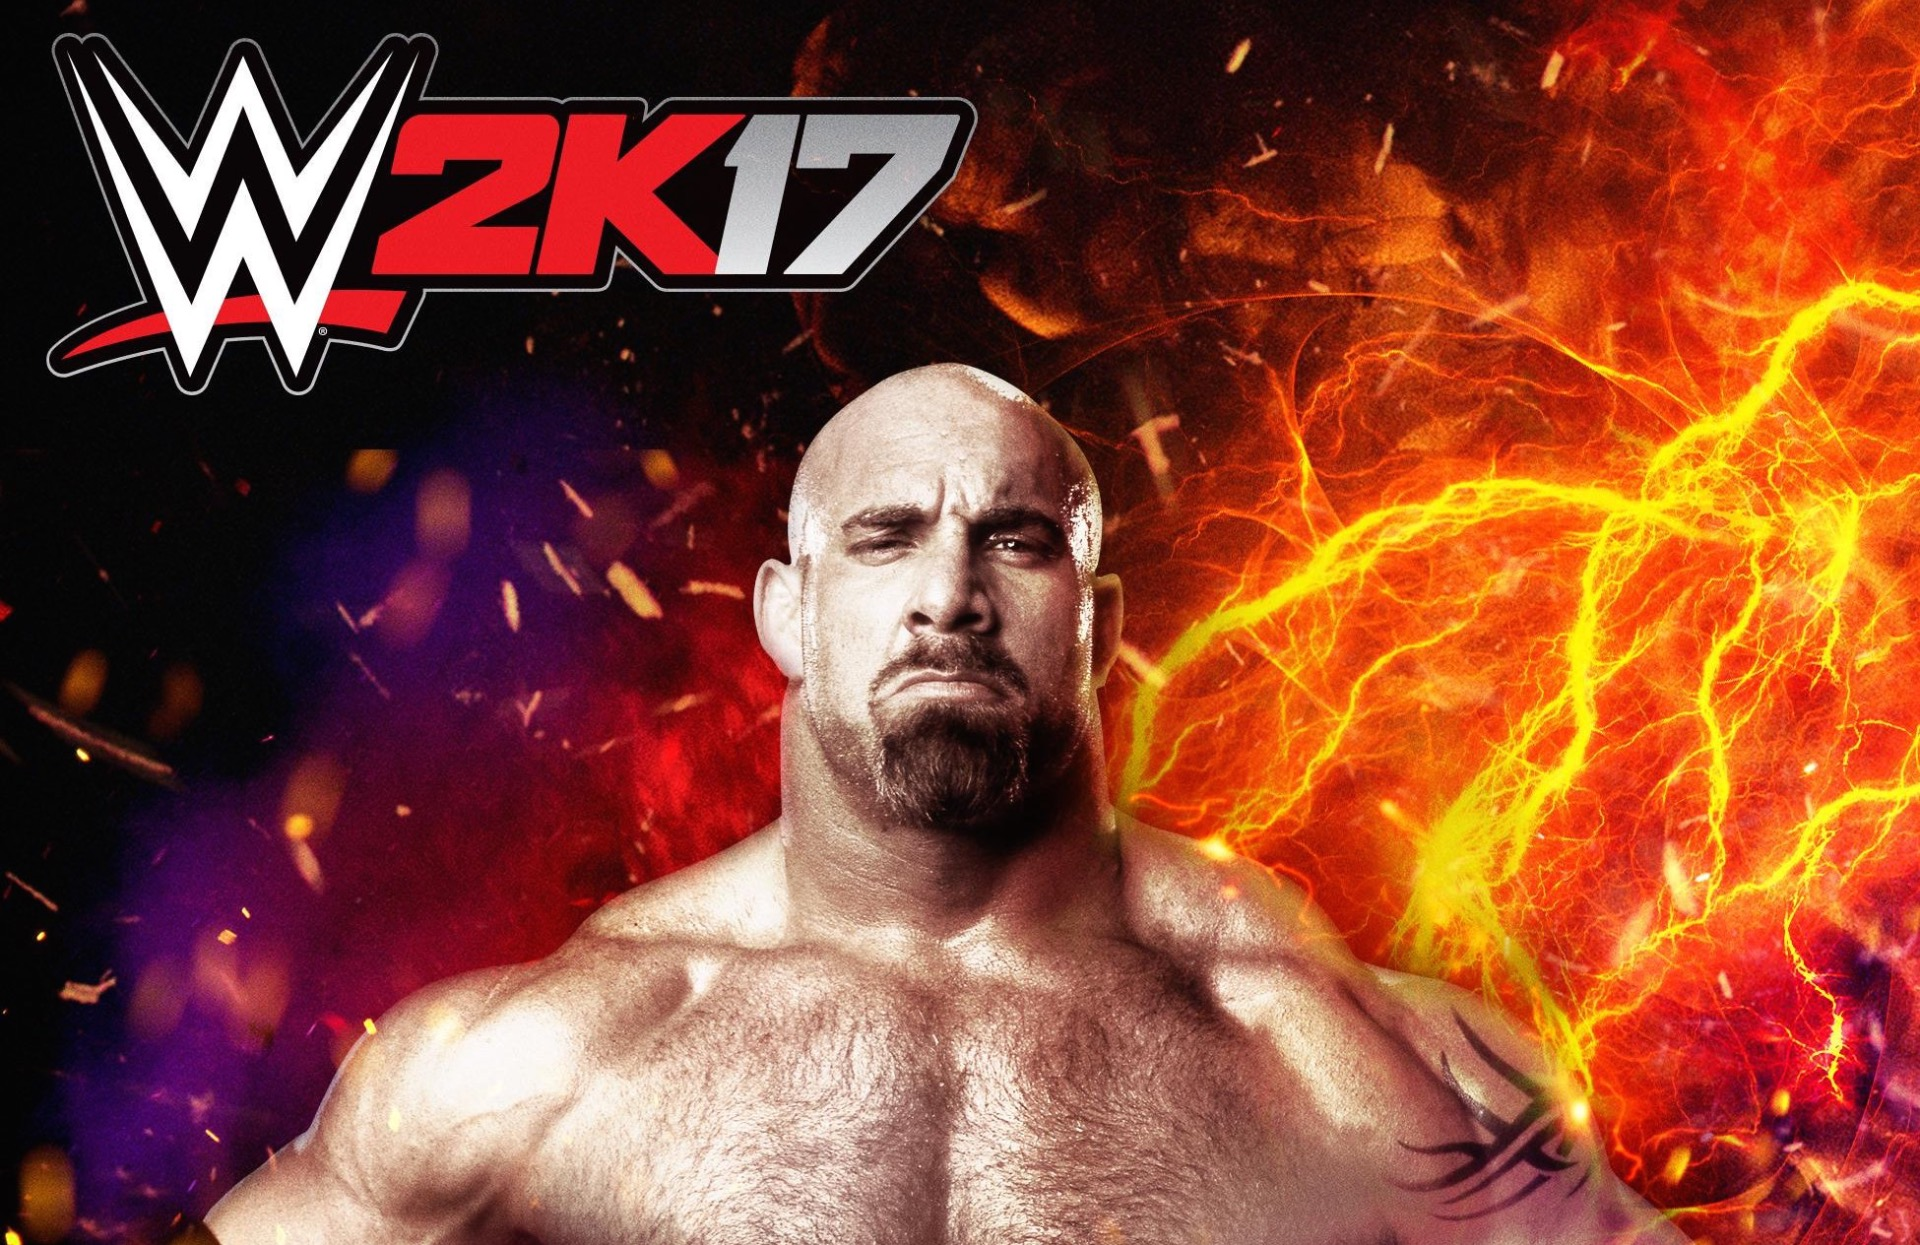 WWE 2K17 Announced With A Surprising Cover Star